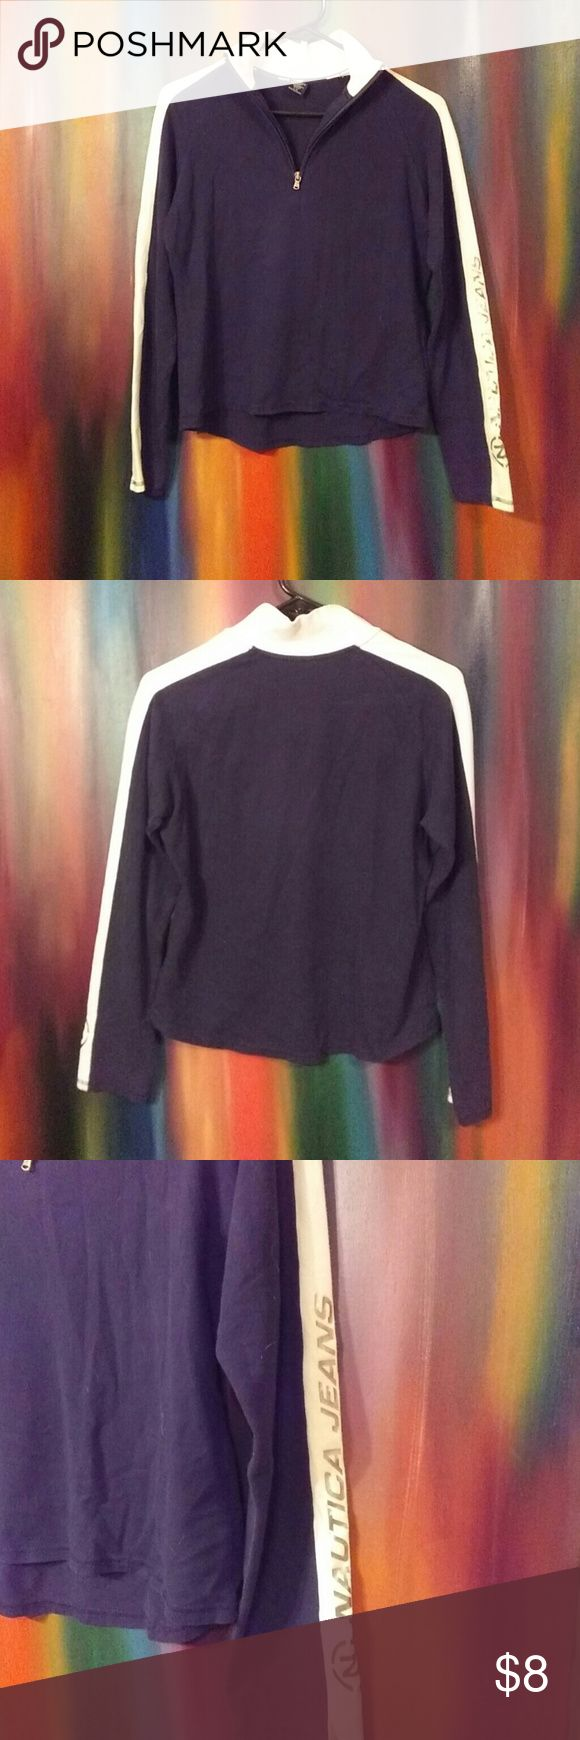 Nautica Jeans Shirt Navy & Cream long sleeve top. High zip up collar w/silver nautica jeans logo on left sleeve. Size Large. Made in Malaysia; 92% Cotton & 8% Spandex Nautica Jeans  Tops Tees - Long Sleeve